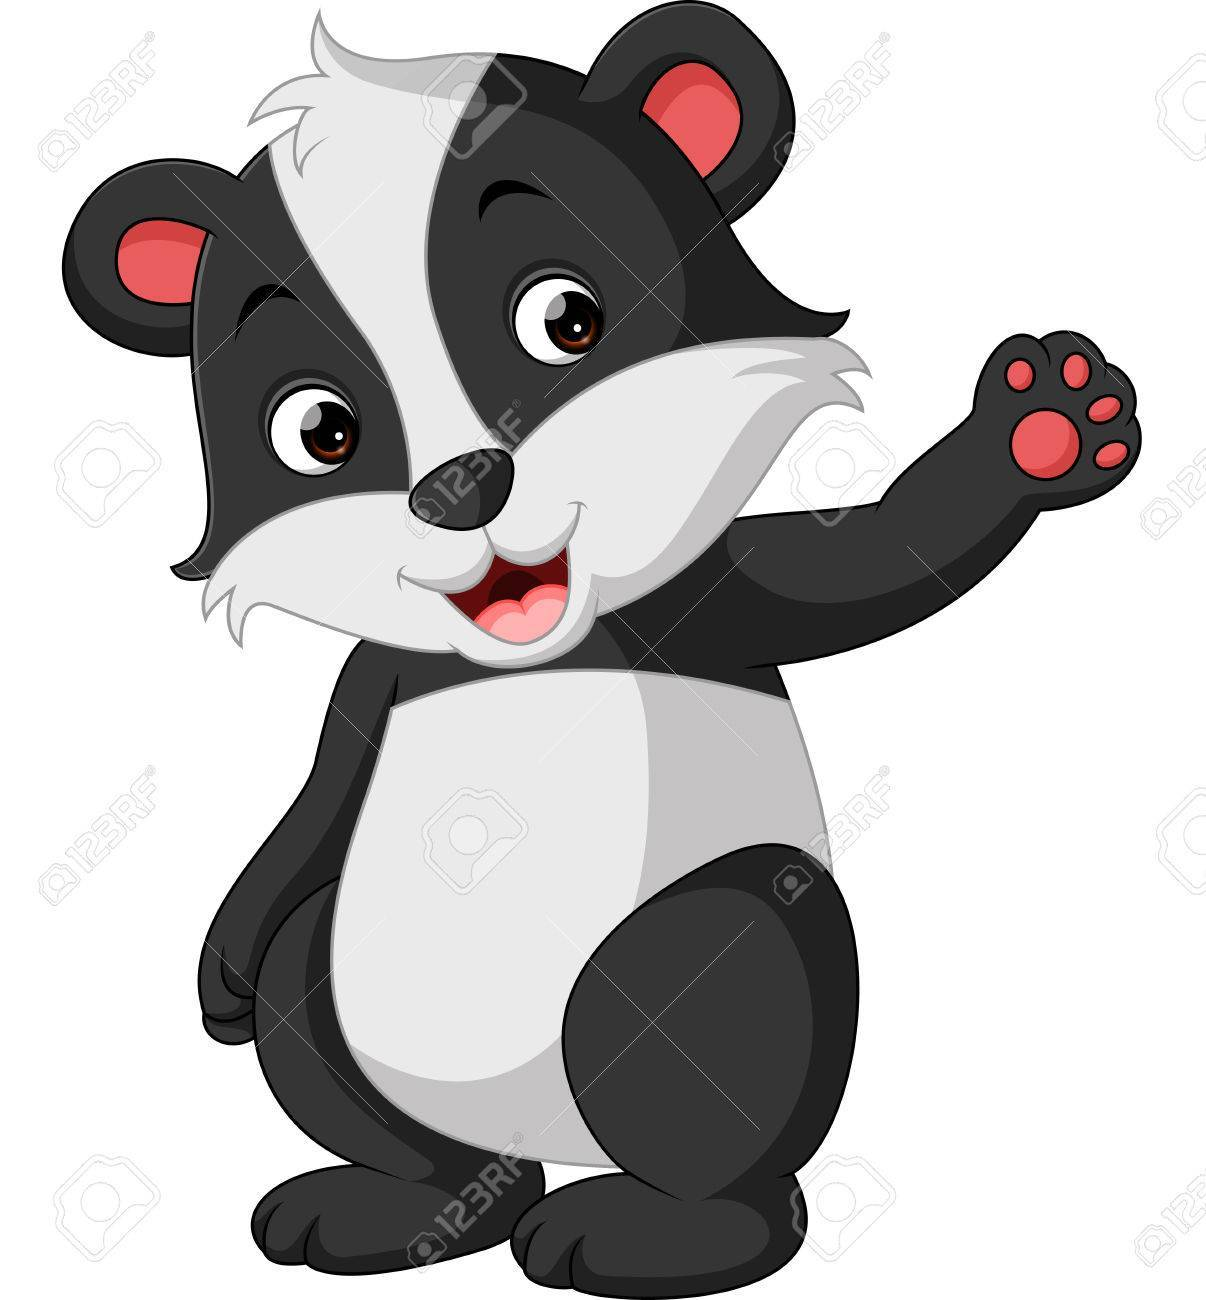 Badger clipart images picture library Cartoon badger clipart 3 » Clipart Portal picture library